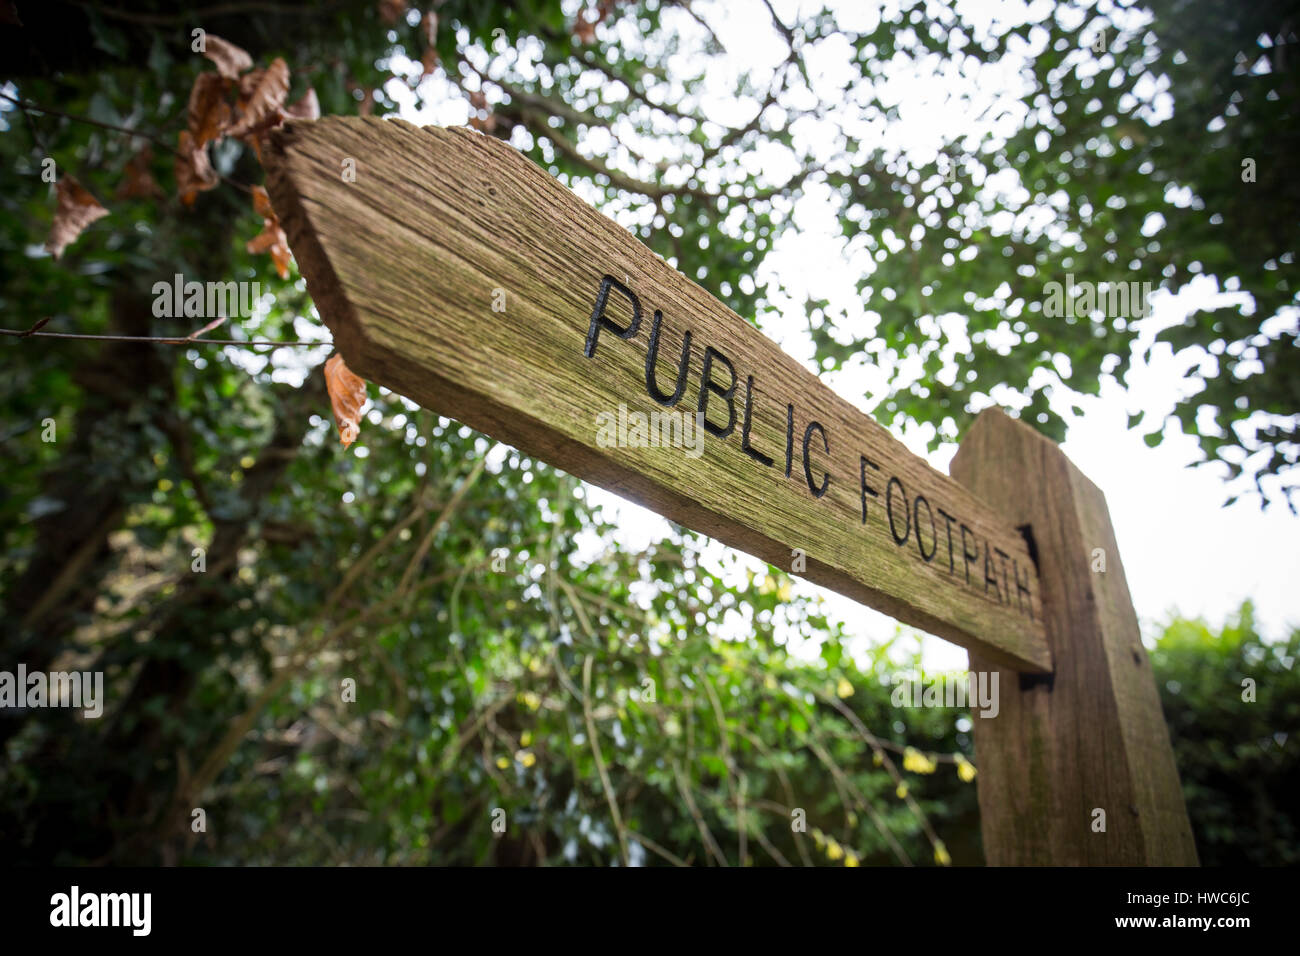 Wooden public footpath sign in England - Stock Image